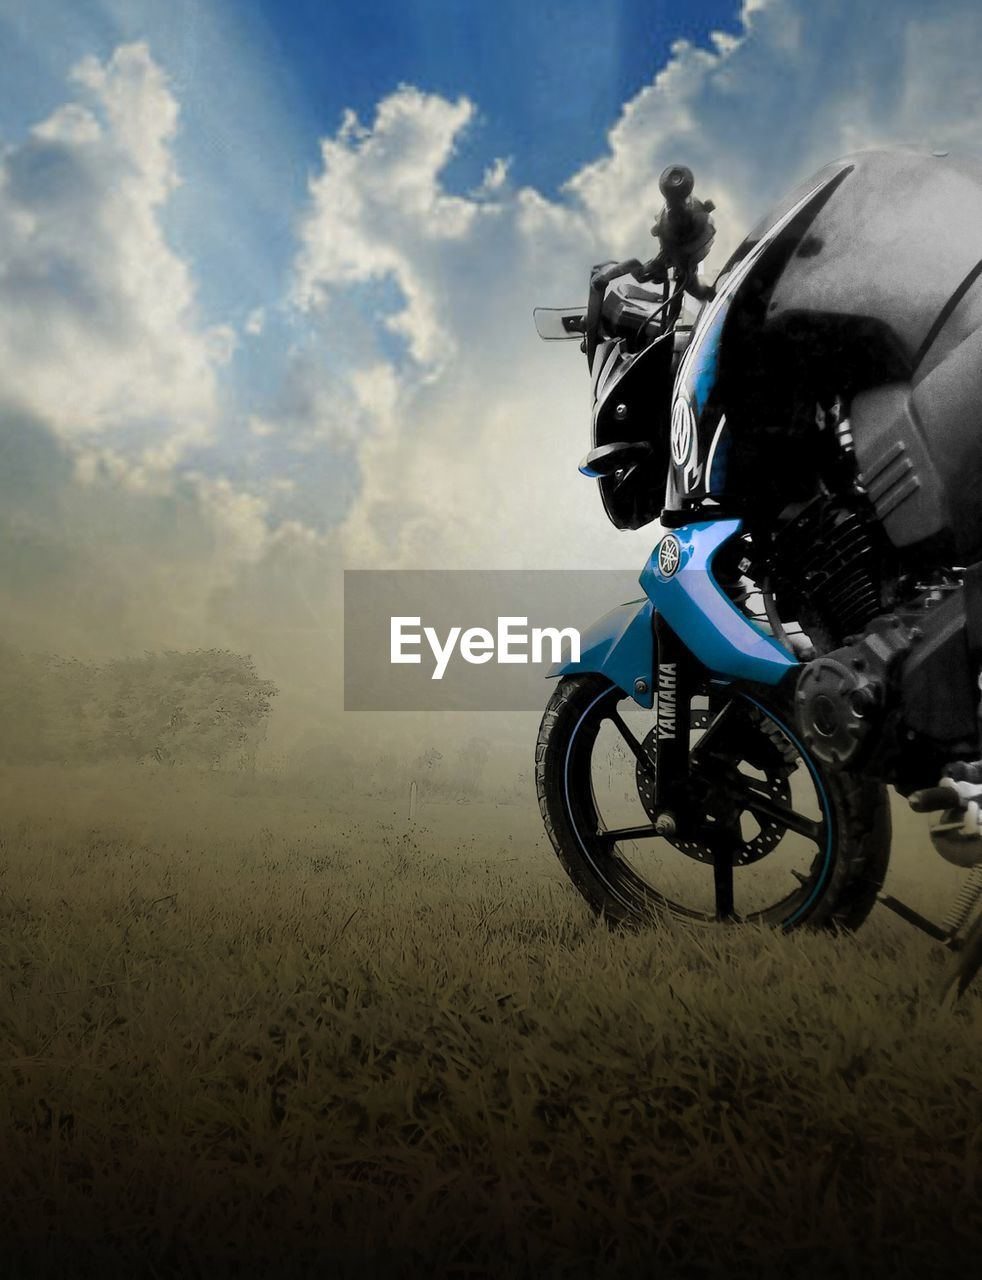 motorcycle, one person, cloud - sky, helmet, sky, speed, motorsport, transportation, riding, mode of transport, adventure, full length, sports helmet, crash helmet, competition, grass, field, motion, outdoors, sports race, motocross, headwear, day, one man only, competitive sport, people, nature, extreme sports, sports track, adult, adults only